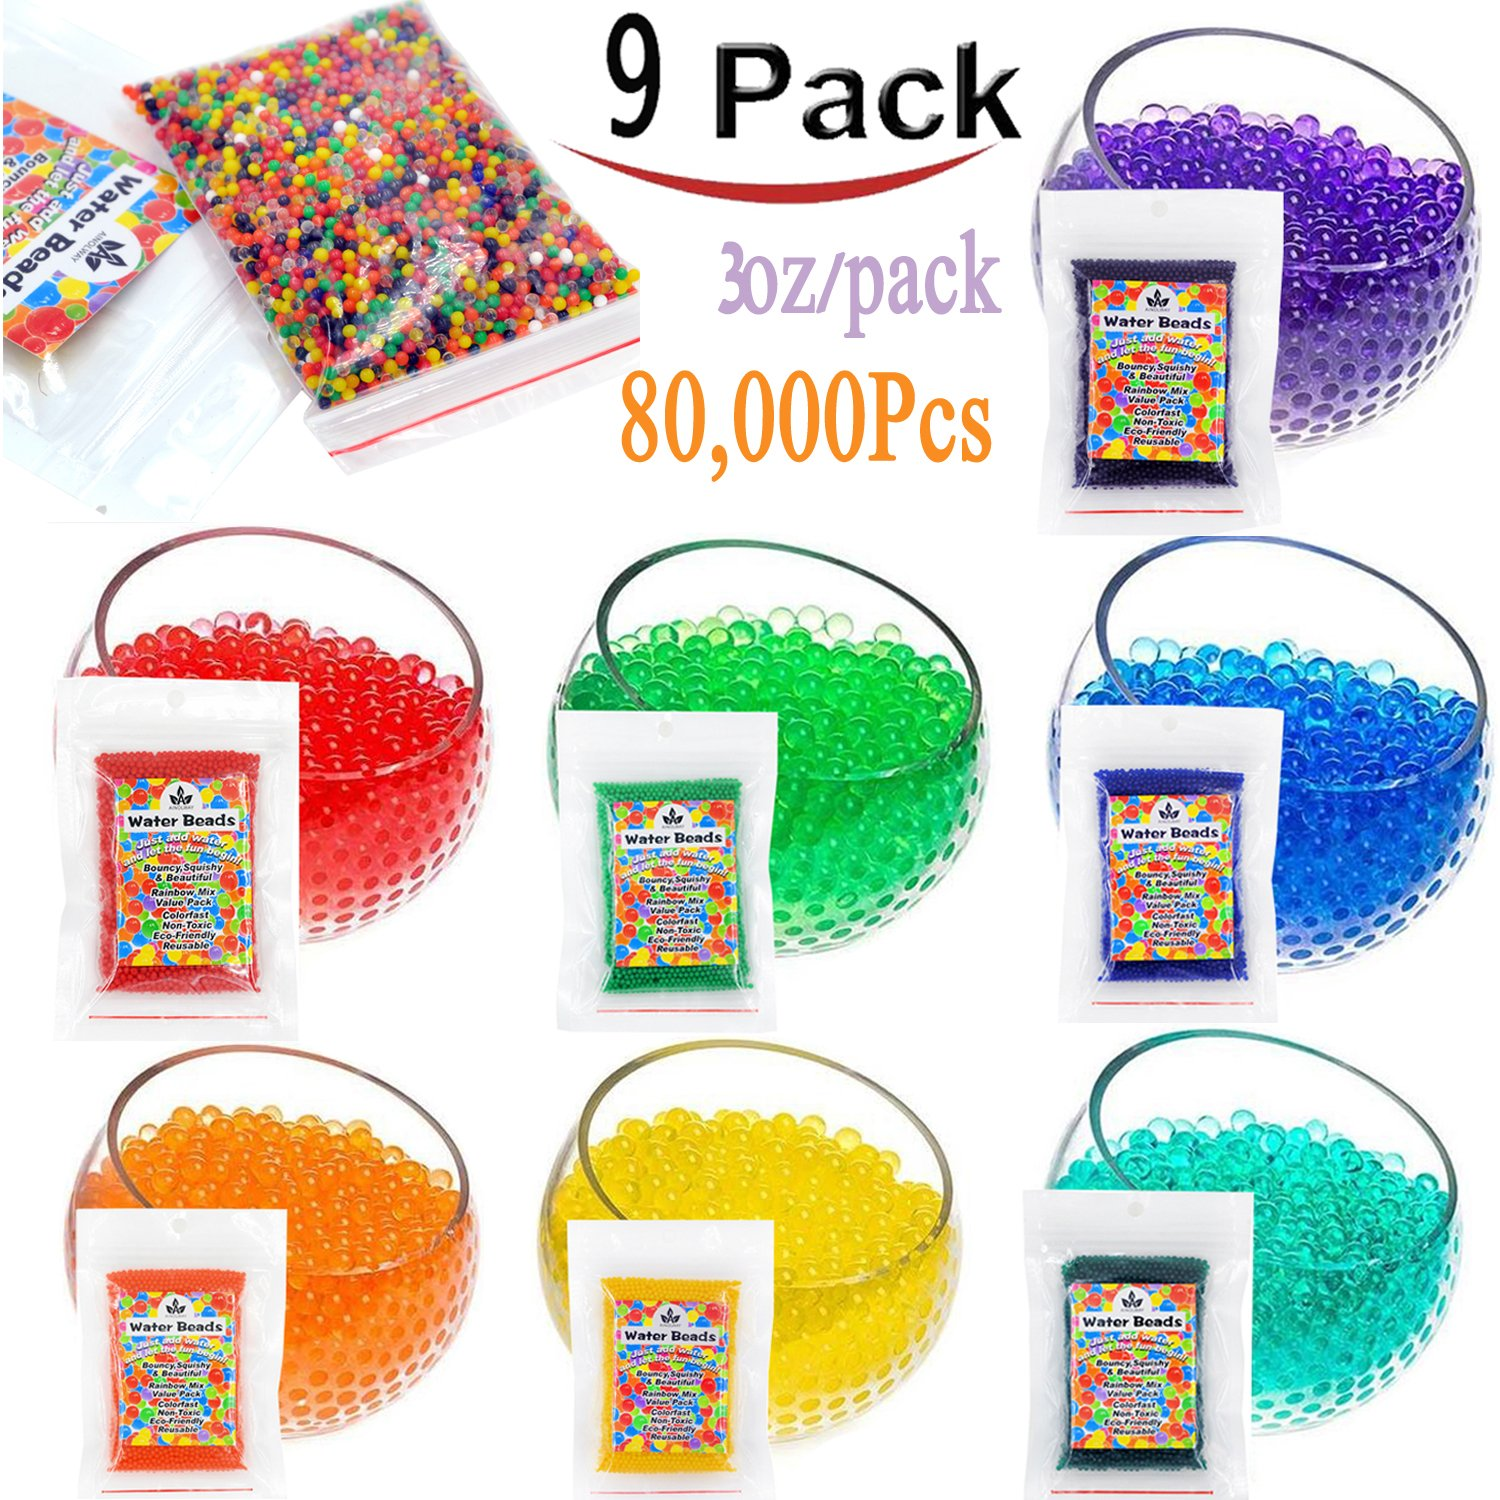 AINOLWAY Water Beads, 30 OZ ( 80,000 beads) Crystal Water Gel Bead For Orbeez Spa Refill, Kids Sensory Toys, Vase Filler, Home Décor, Transparent Jelly Pearls 9 Pack Water Beads